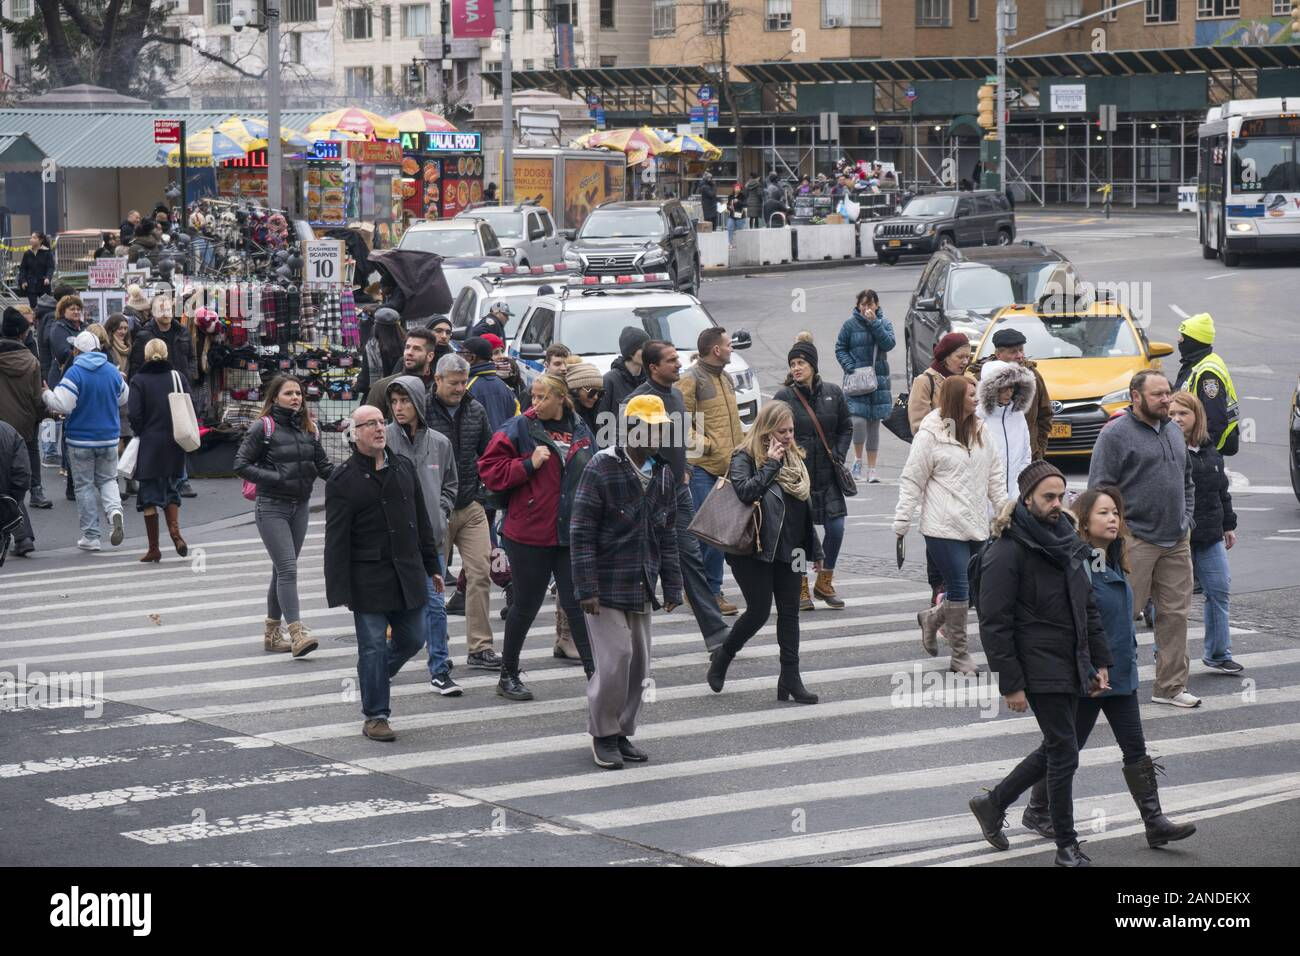 People in the crosswalk at Columbus Circle and 60th Street at Central Park, New York City. Stock Photo